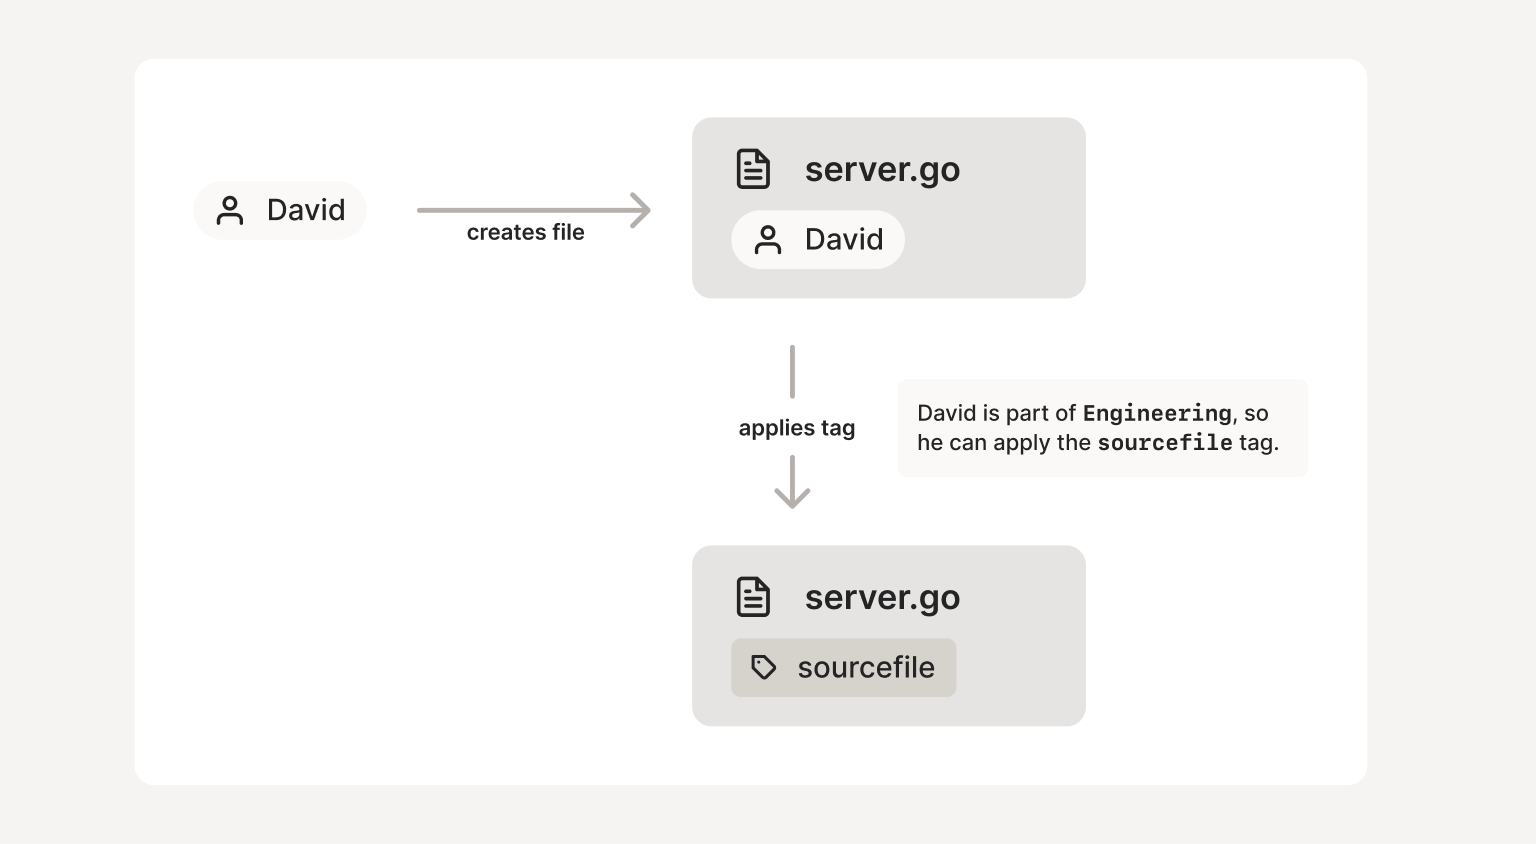 A diagram demonstrating a user creating a file. Upon creation, the file is owned by the user. Because the user is part of the Engineering group, he is able to apply the 'sourcefile' tag which causes the file to inherit the permissions associated with that tag.